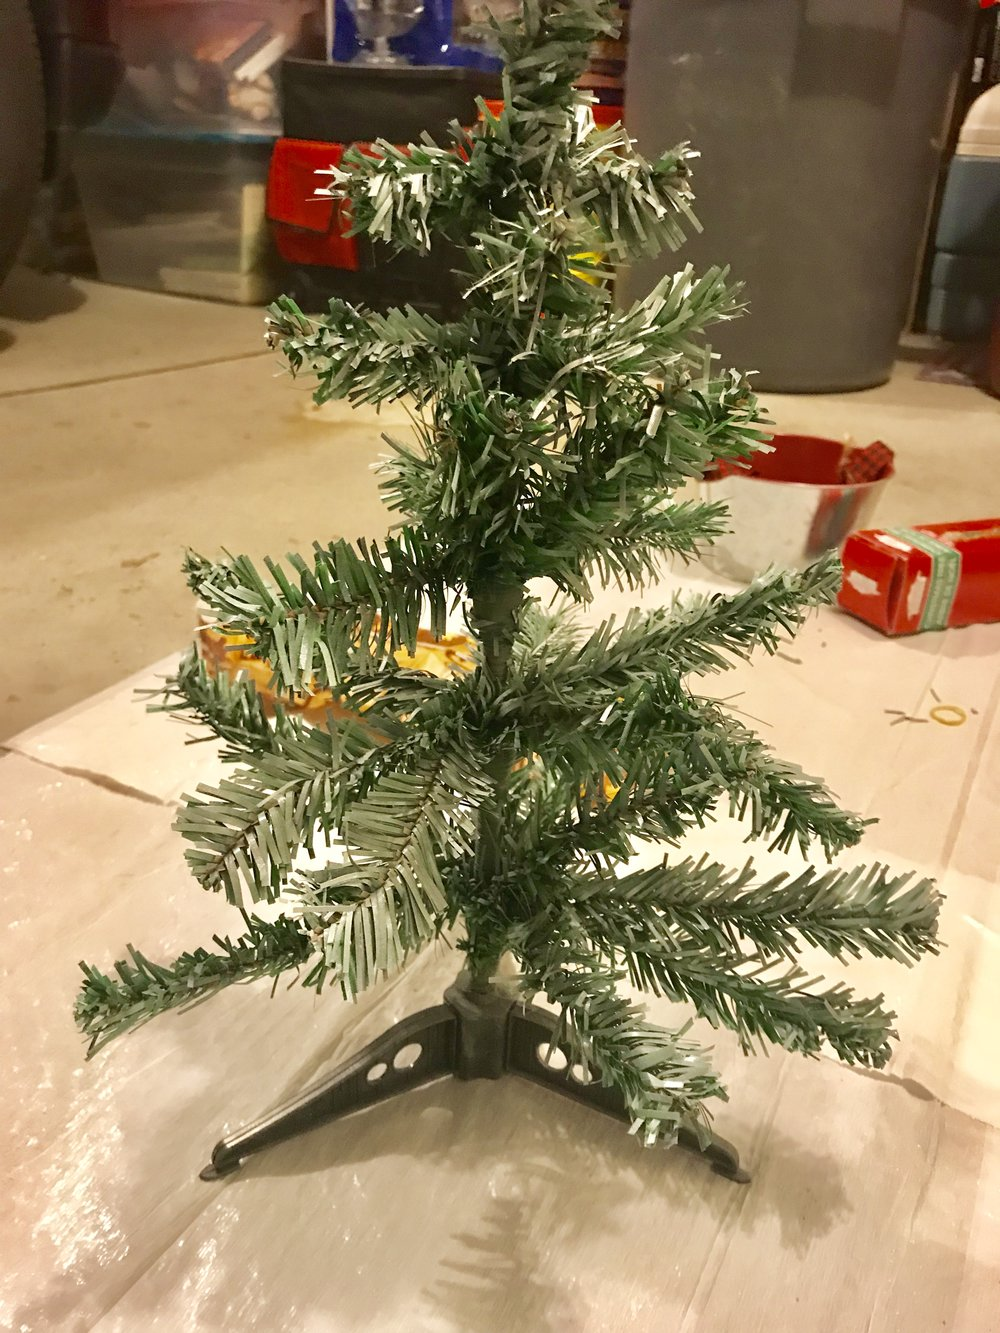 Christmas trees can be spray painted to give them a more rustic look.